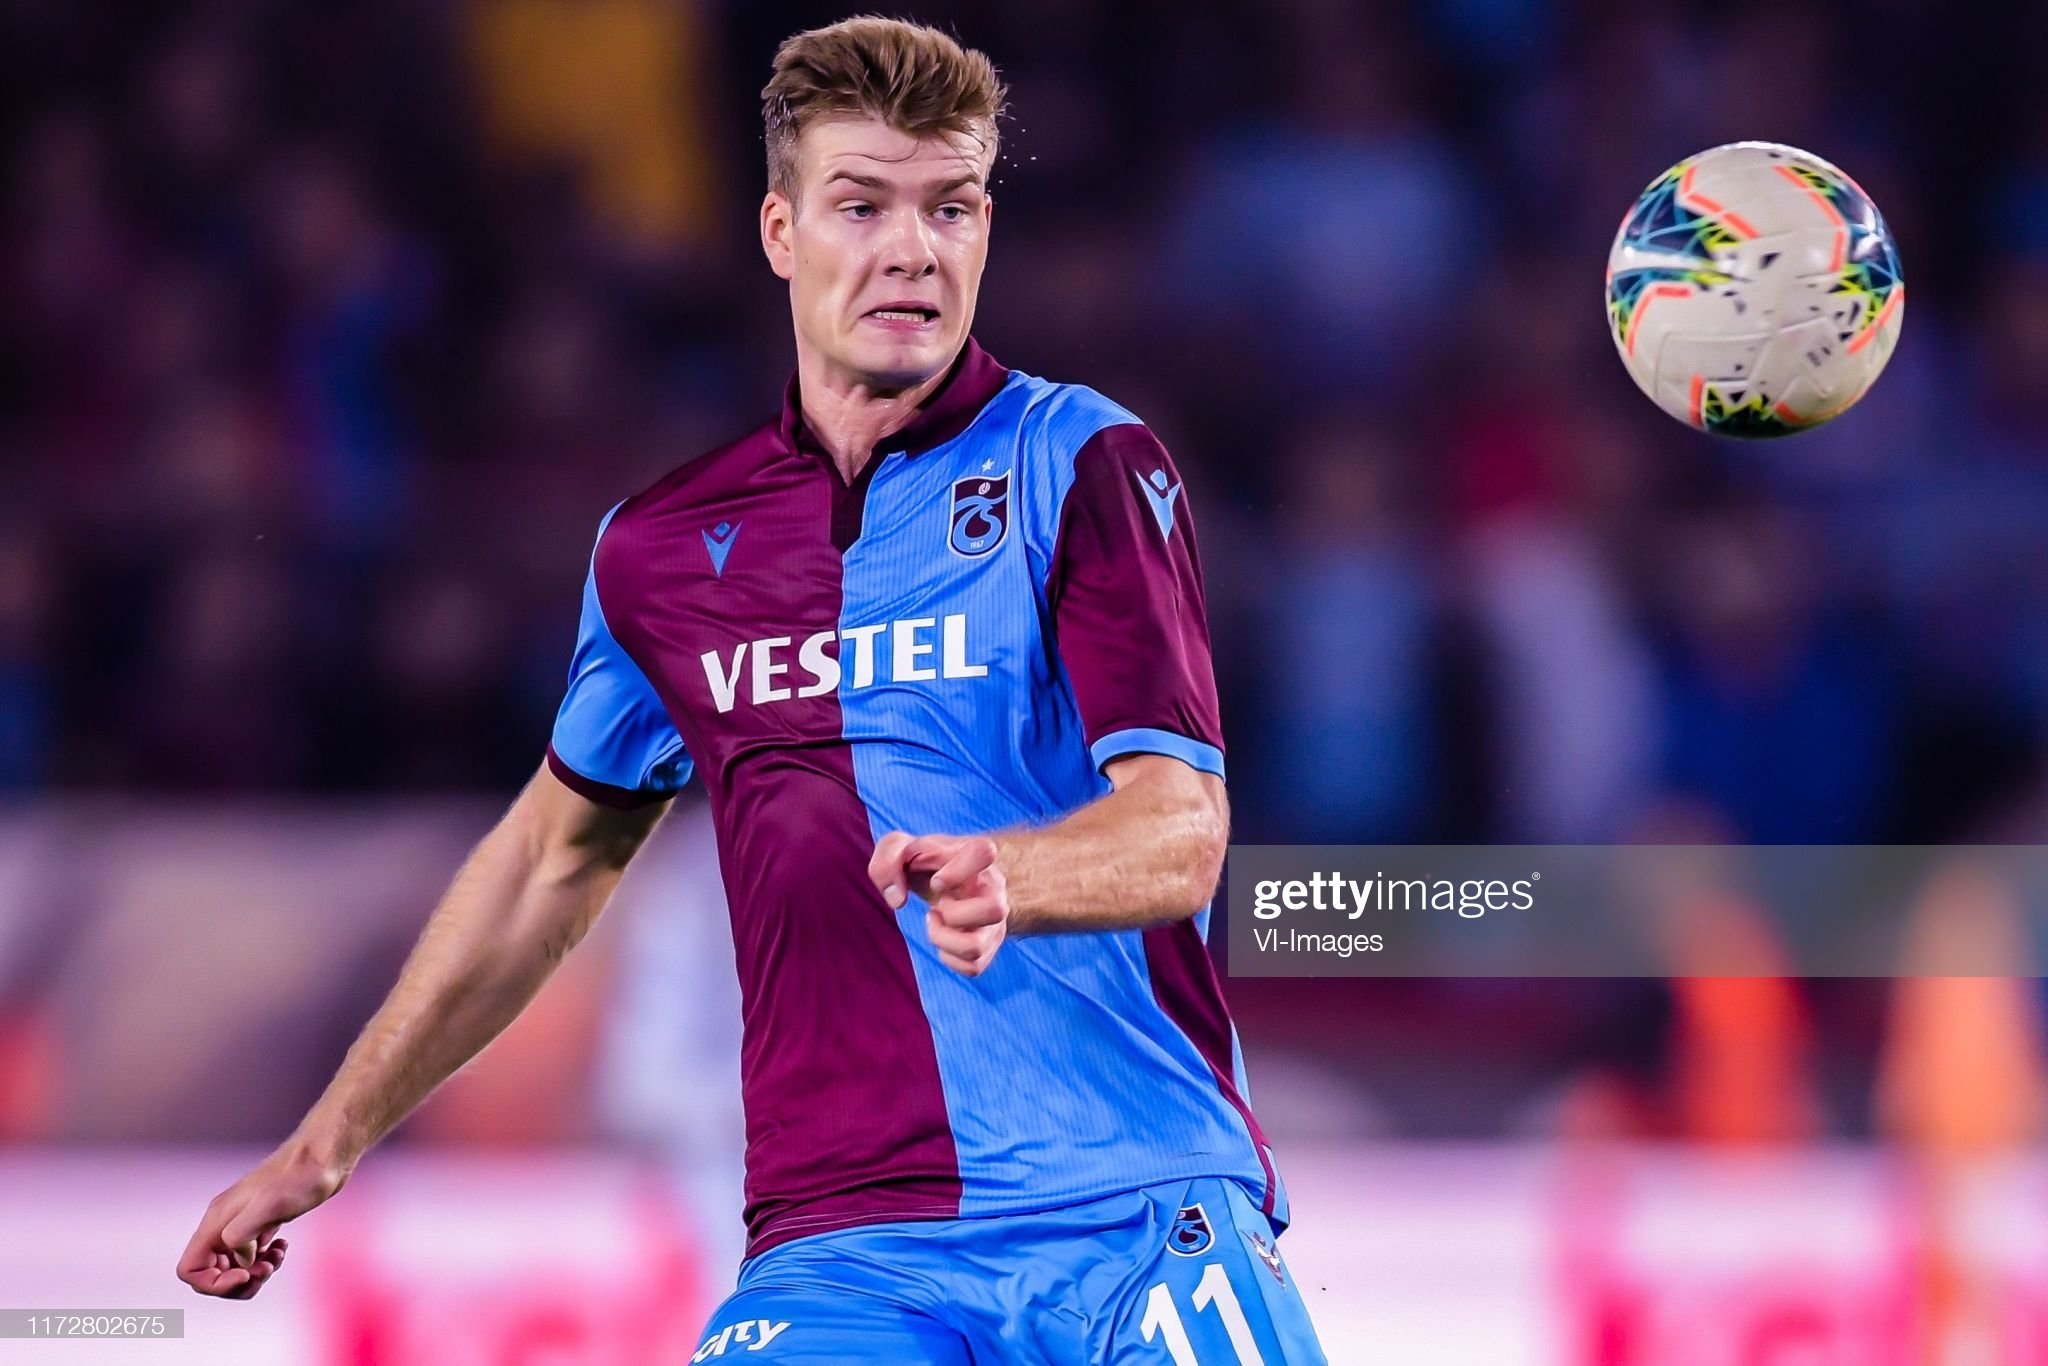 Trabzonspor v Istanbul Basaksehir Preview, prediction and odds